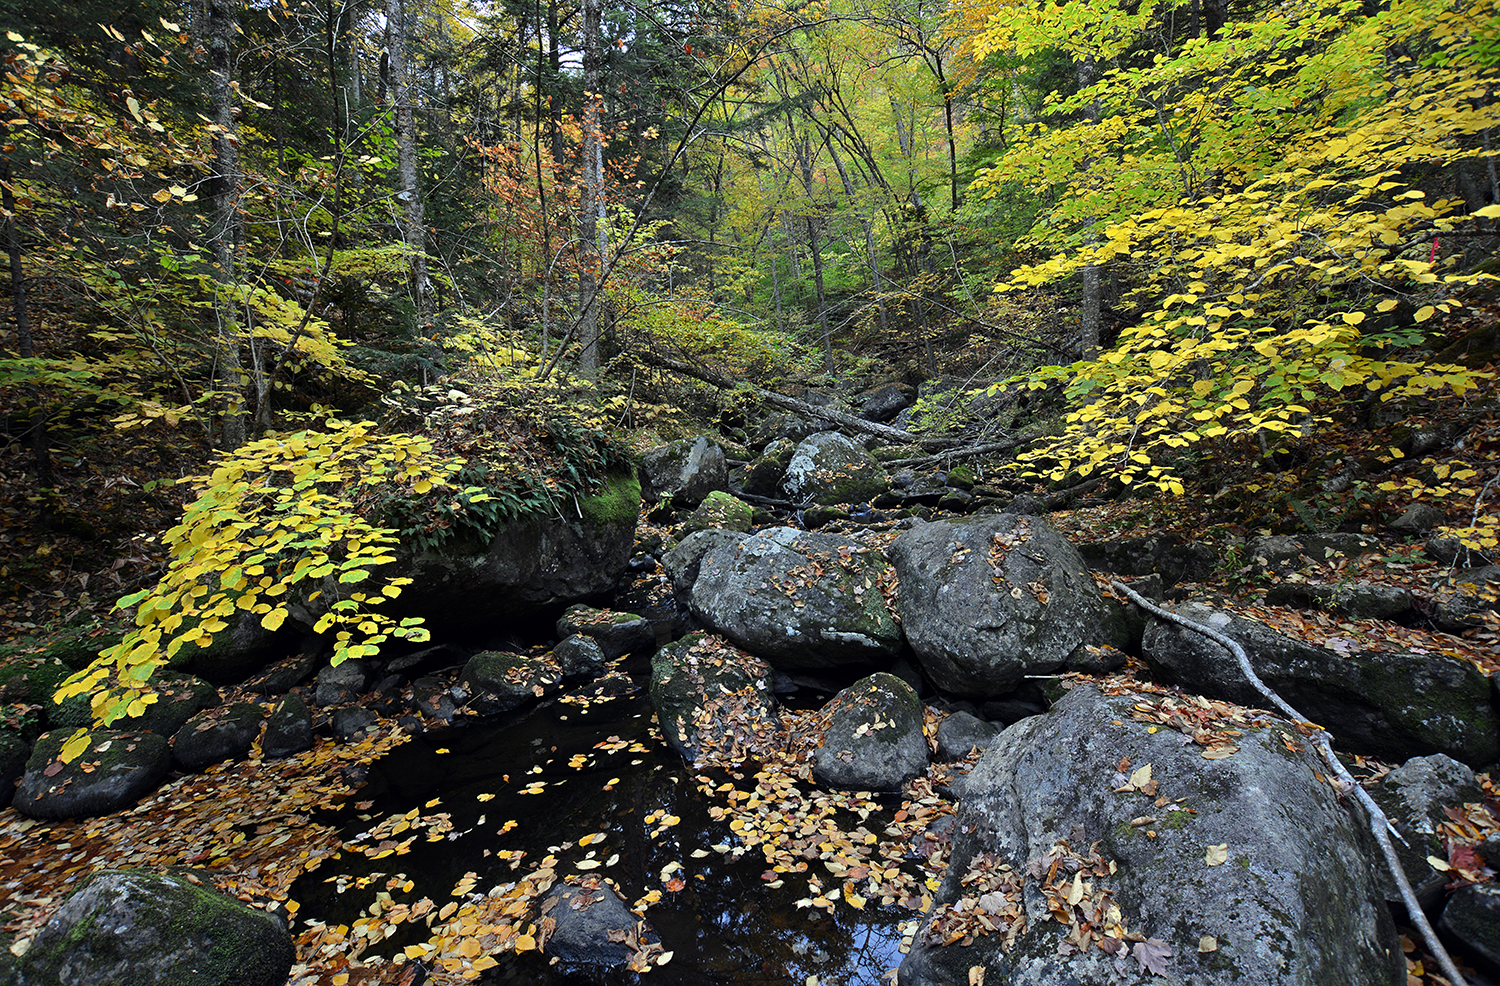 Depths of OK Slip Brook ravine just upstream from Hudson River_1588.JPG